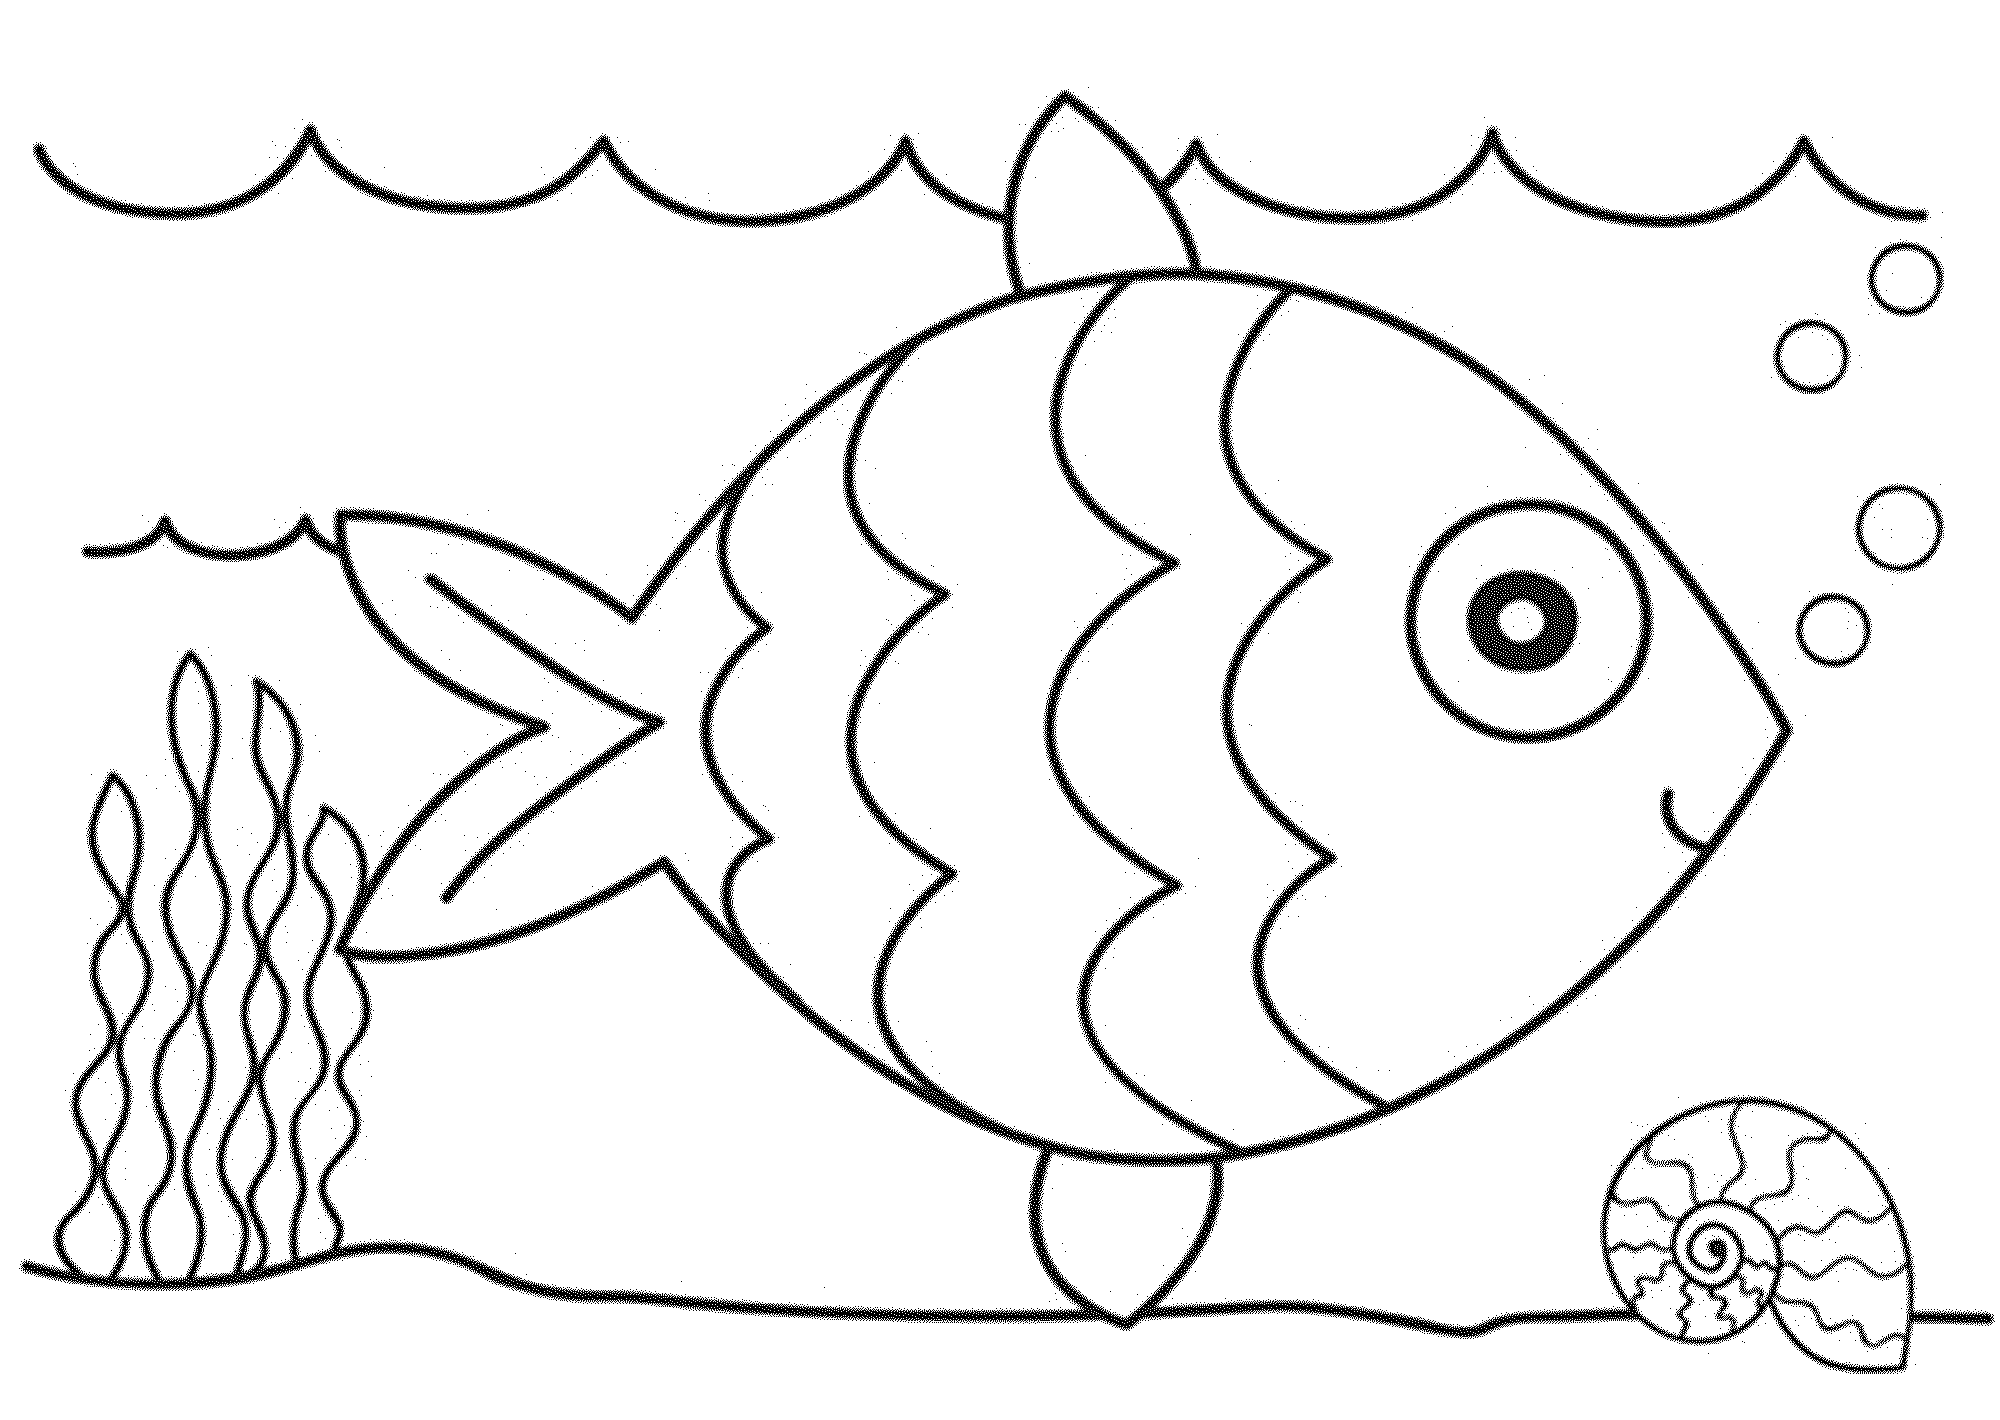 kids pictures of fish free fish line drawings download free clip art free clip fish pictures kids of